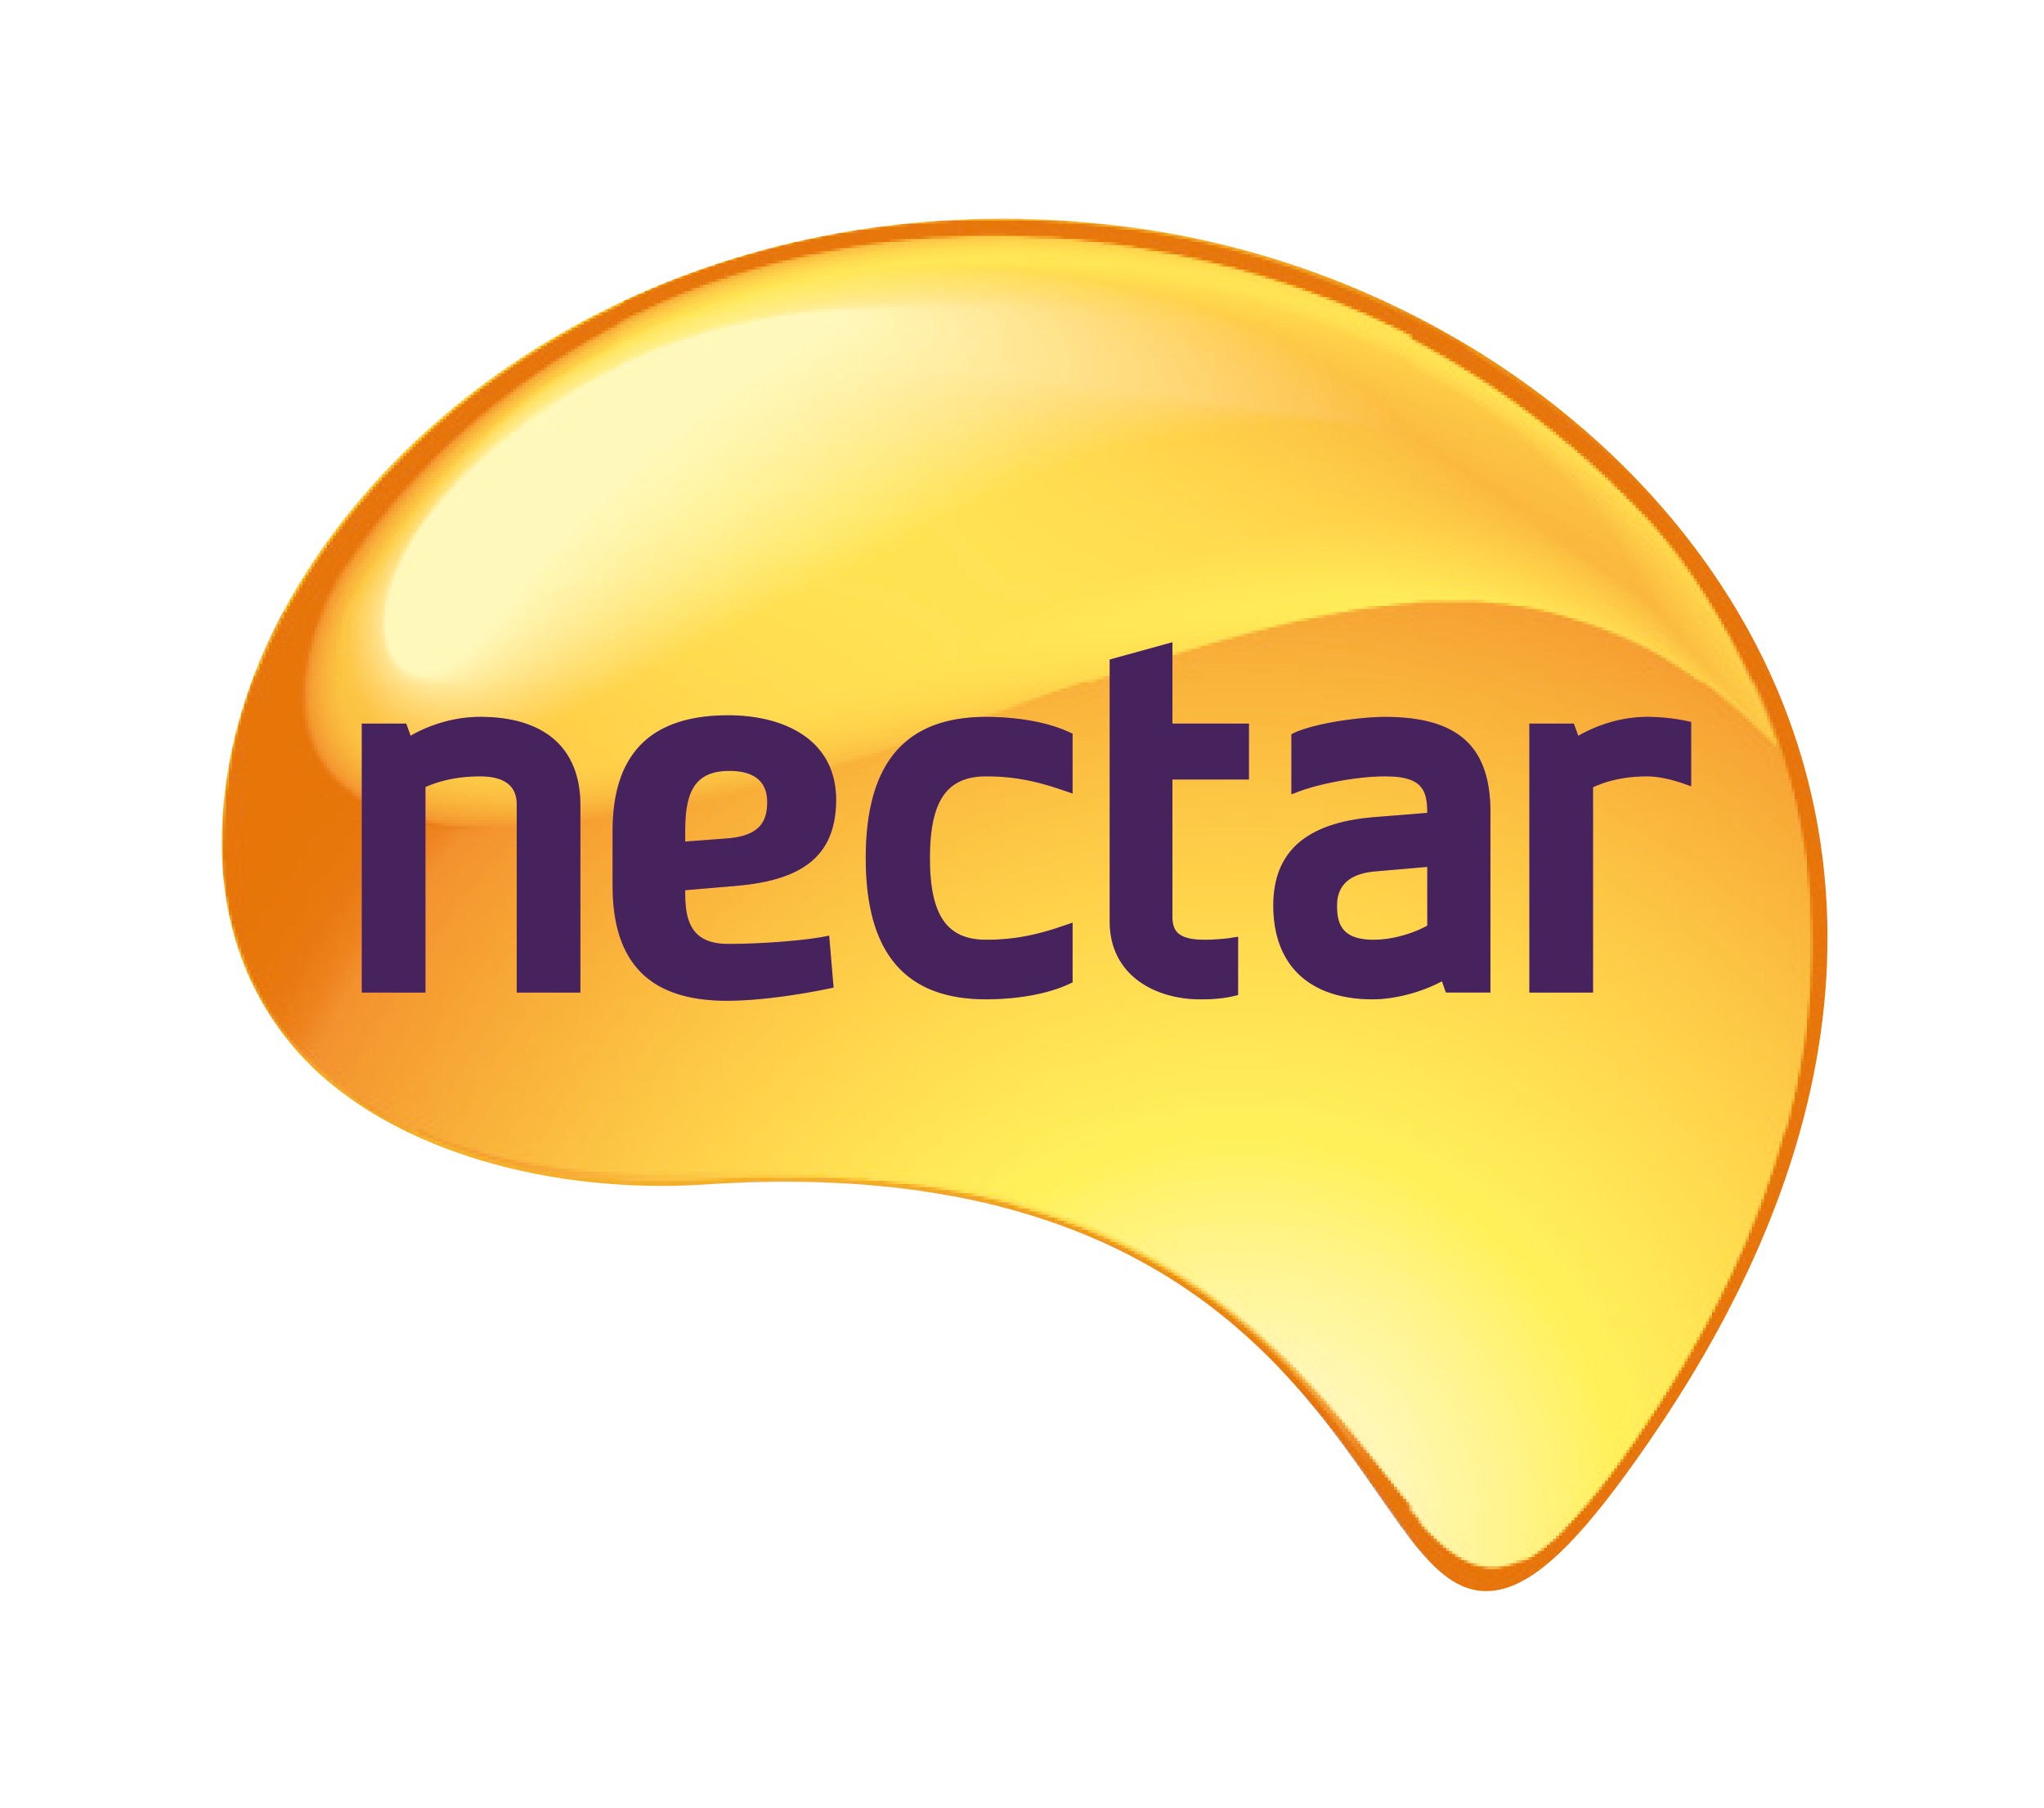 Nectar Logo for eBay